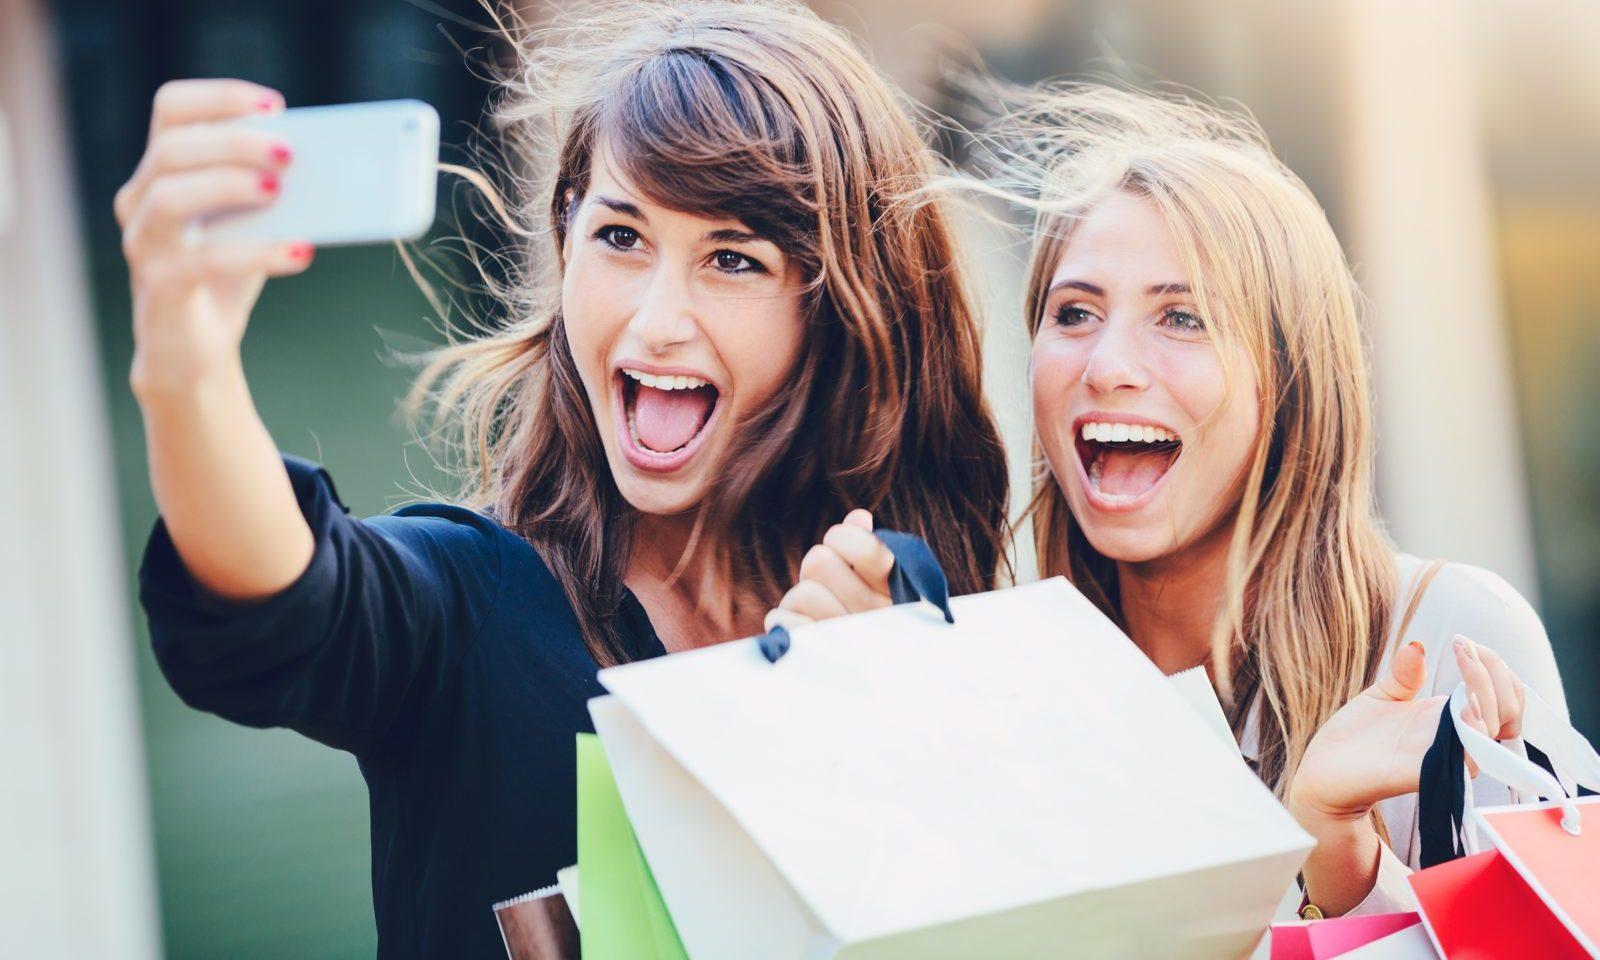 The Shopping Habits of Millennials